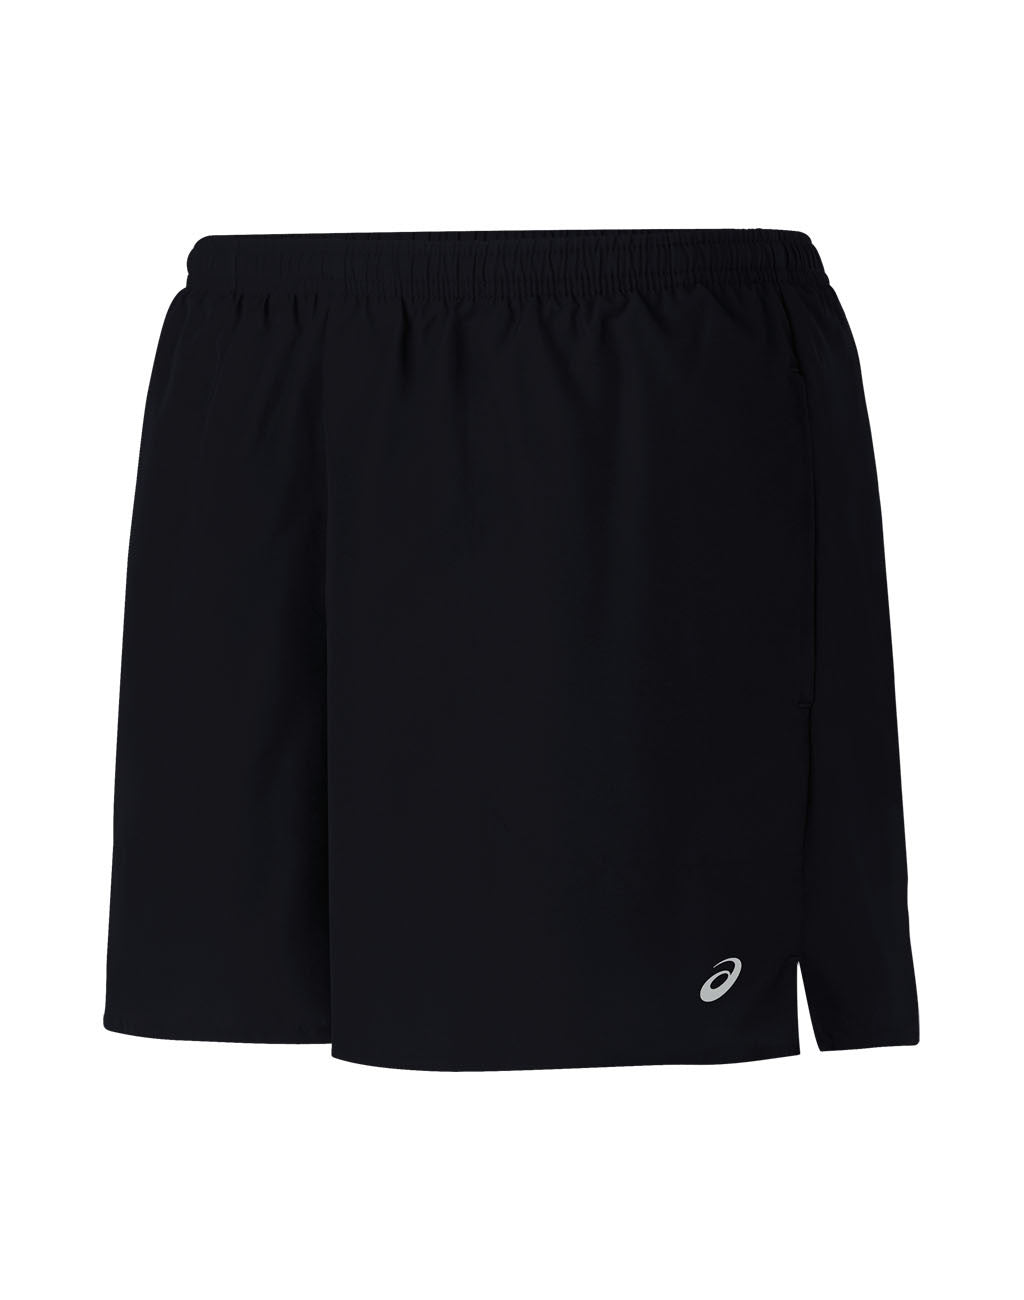 ASICS Pocketed Short, 5in (Women's)S_master_image